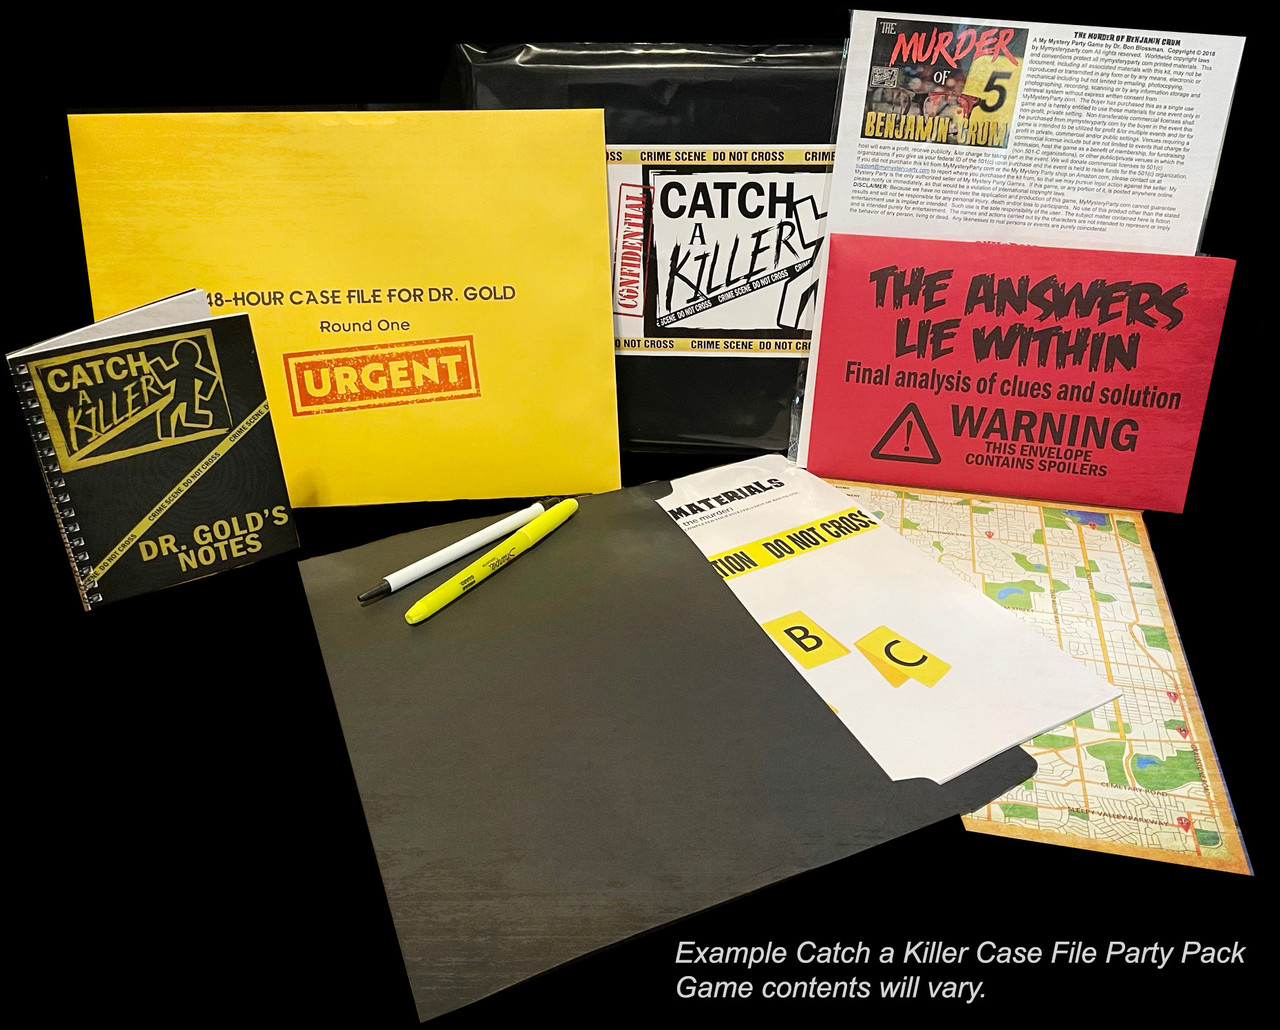 Catch a Killer case file party pack